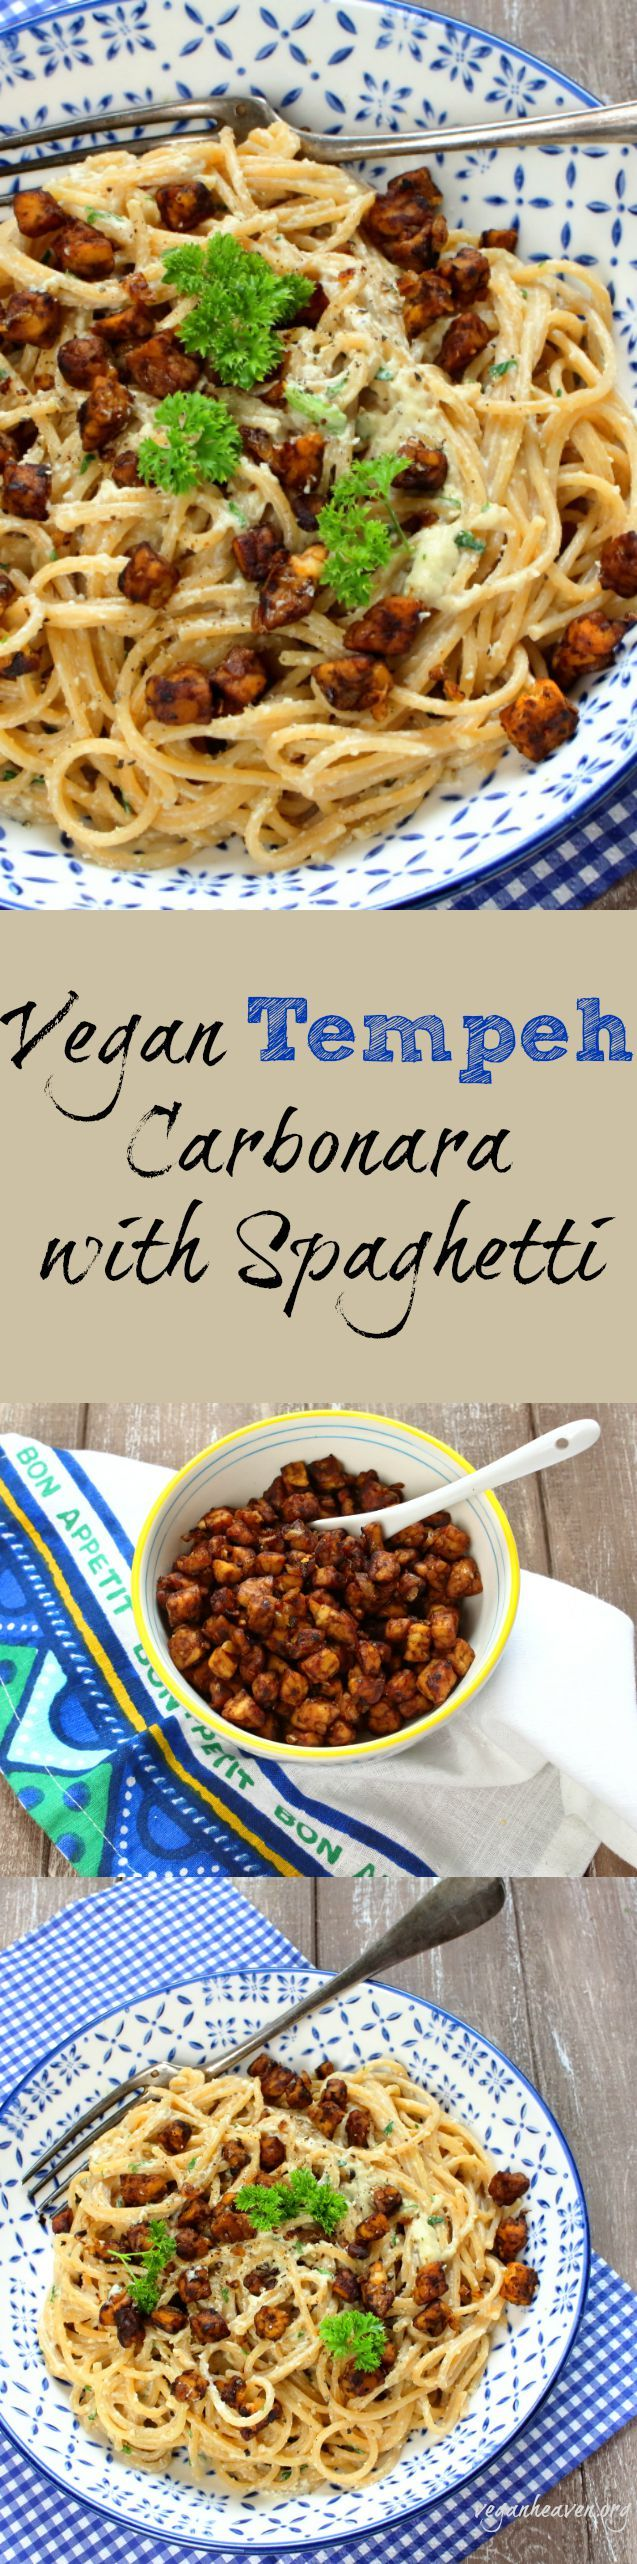 Vegan Tempeh Carbonara with Spaghetti. Super creamy and crispy!  Check out the recipe at veganheaven.org! #vegan #healthy #tempeh